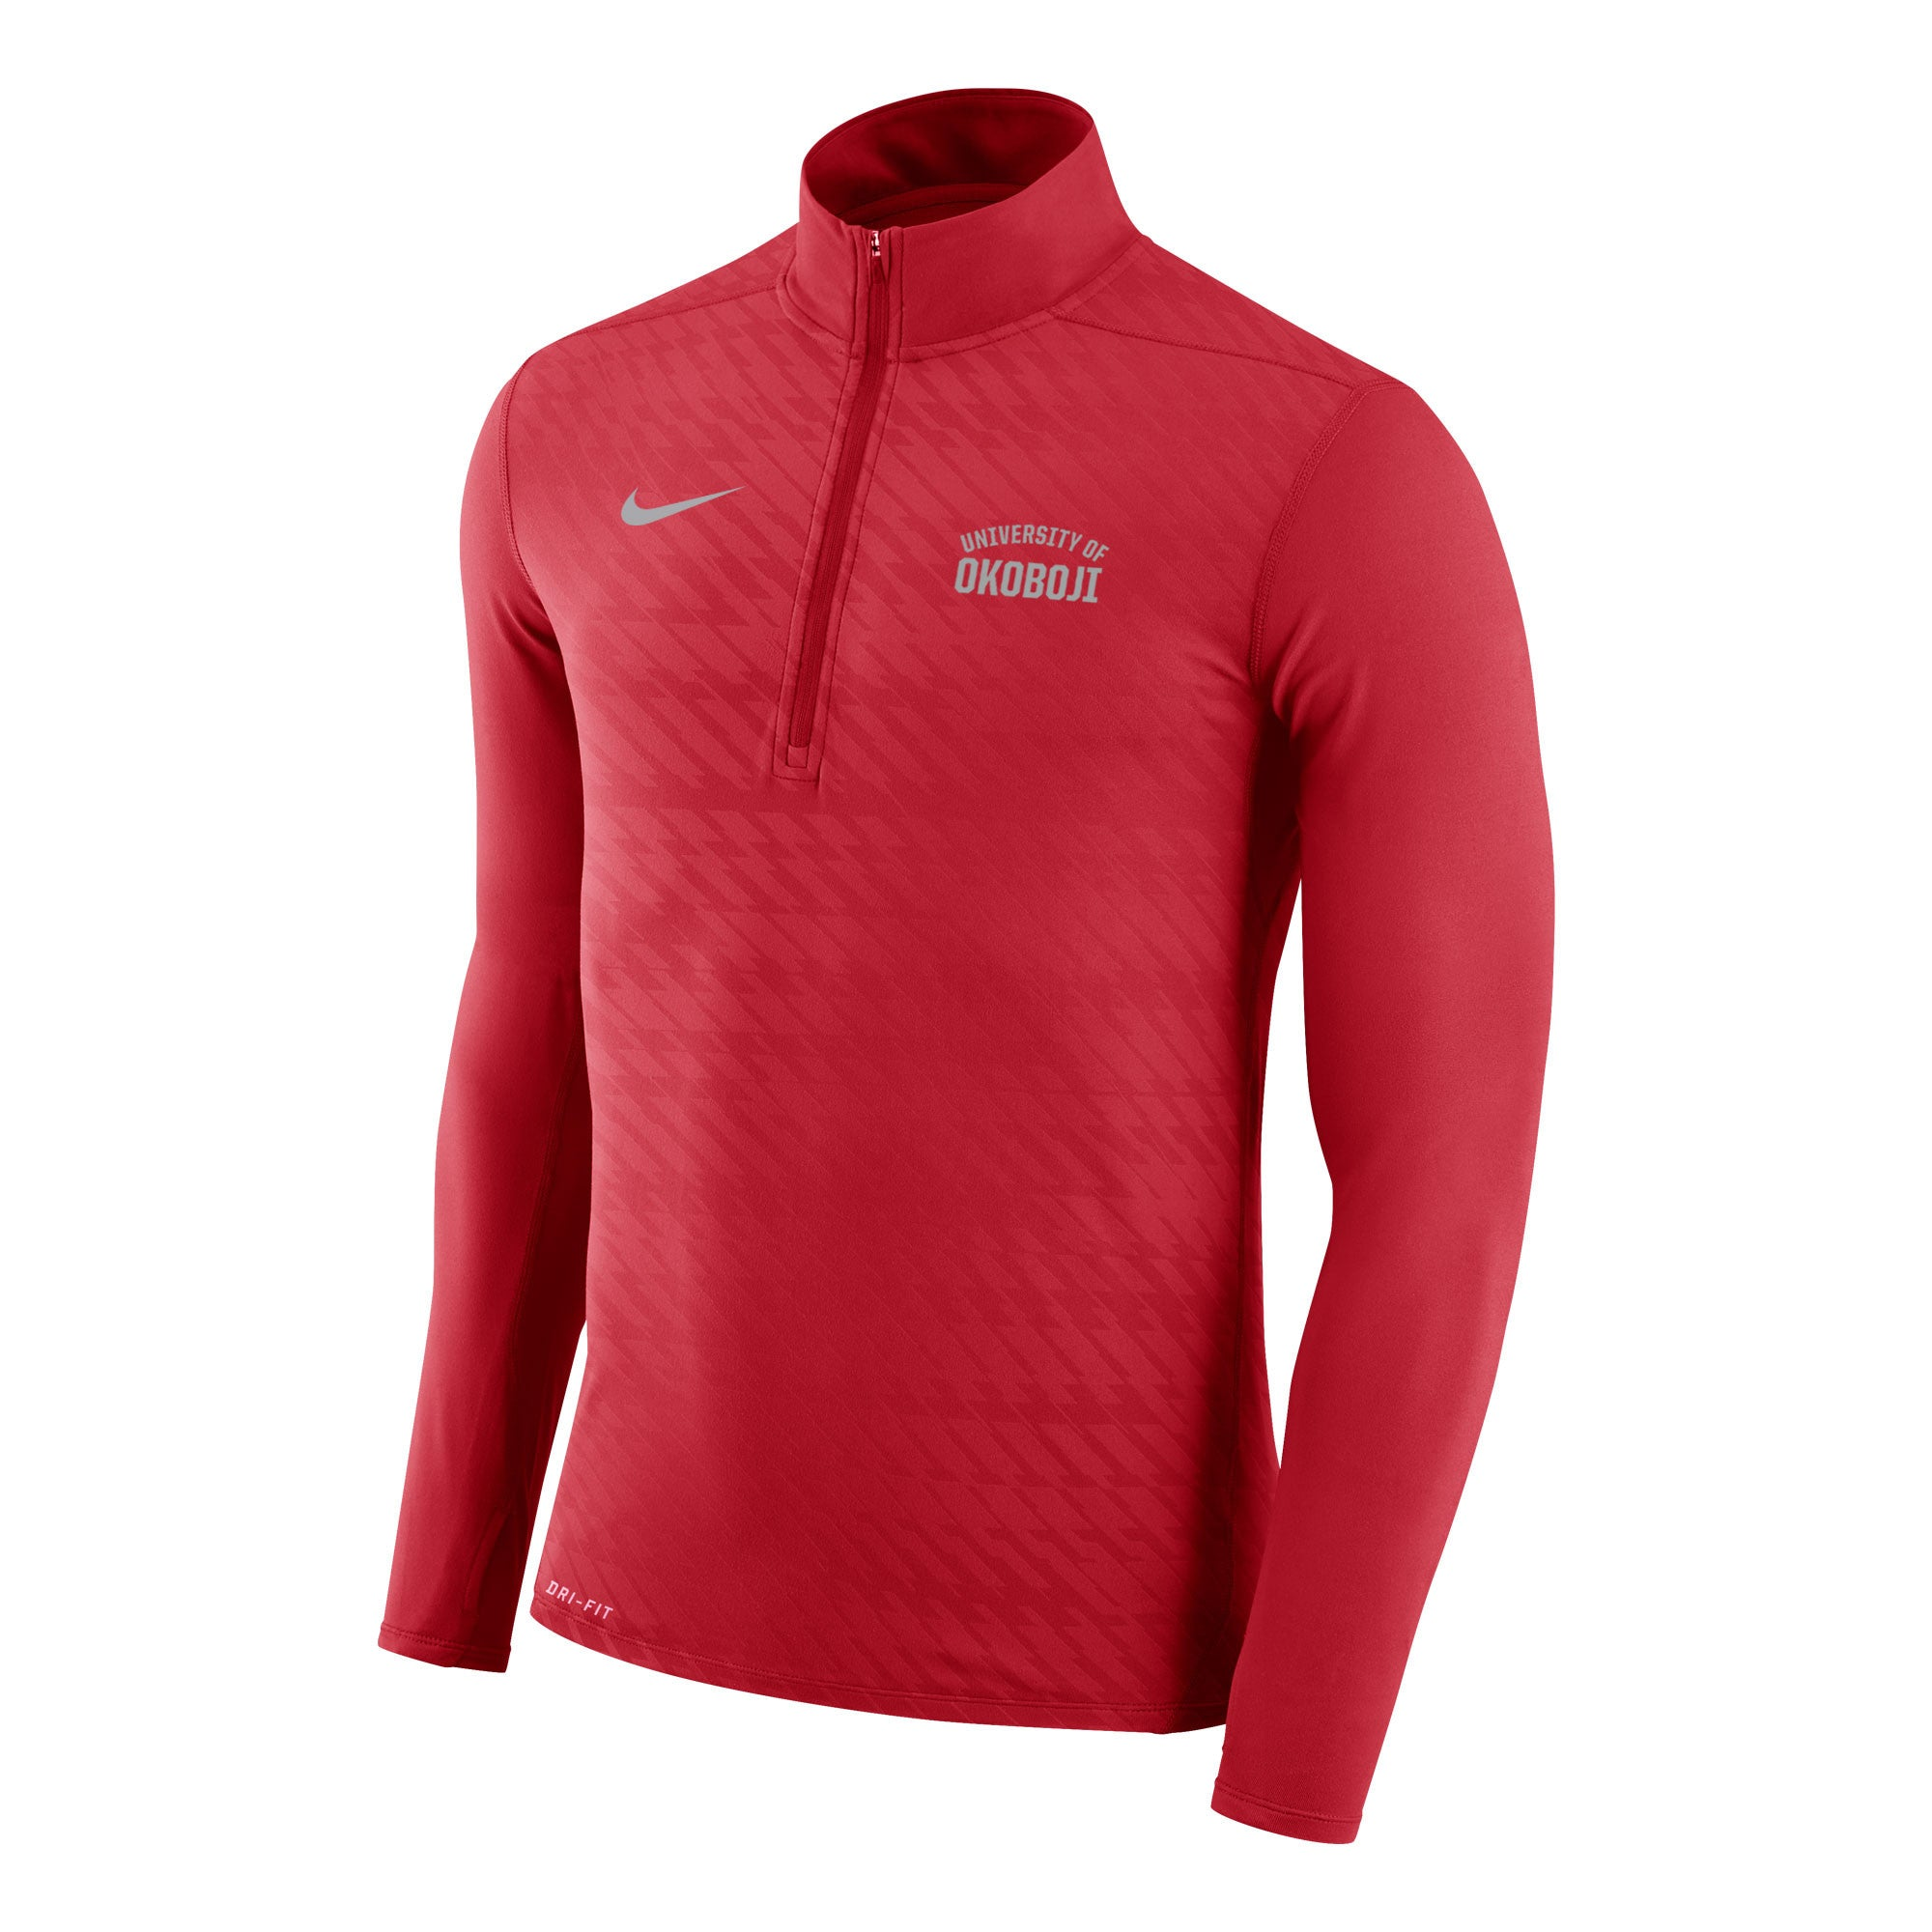 Men's Embossed Element 1/4 Zip Top - Red